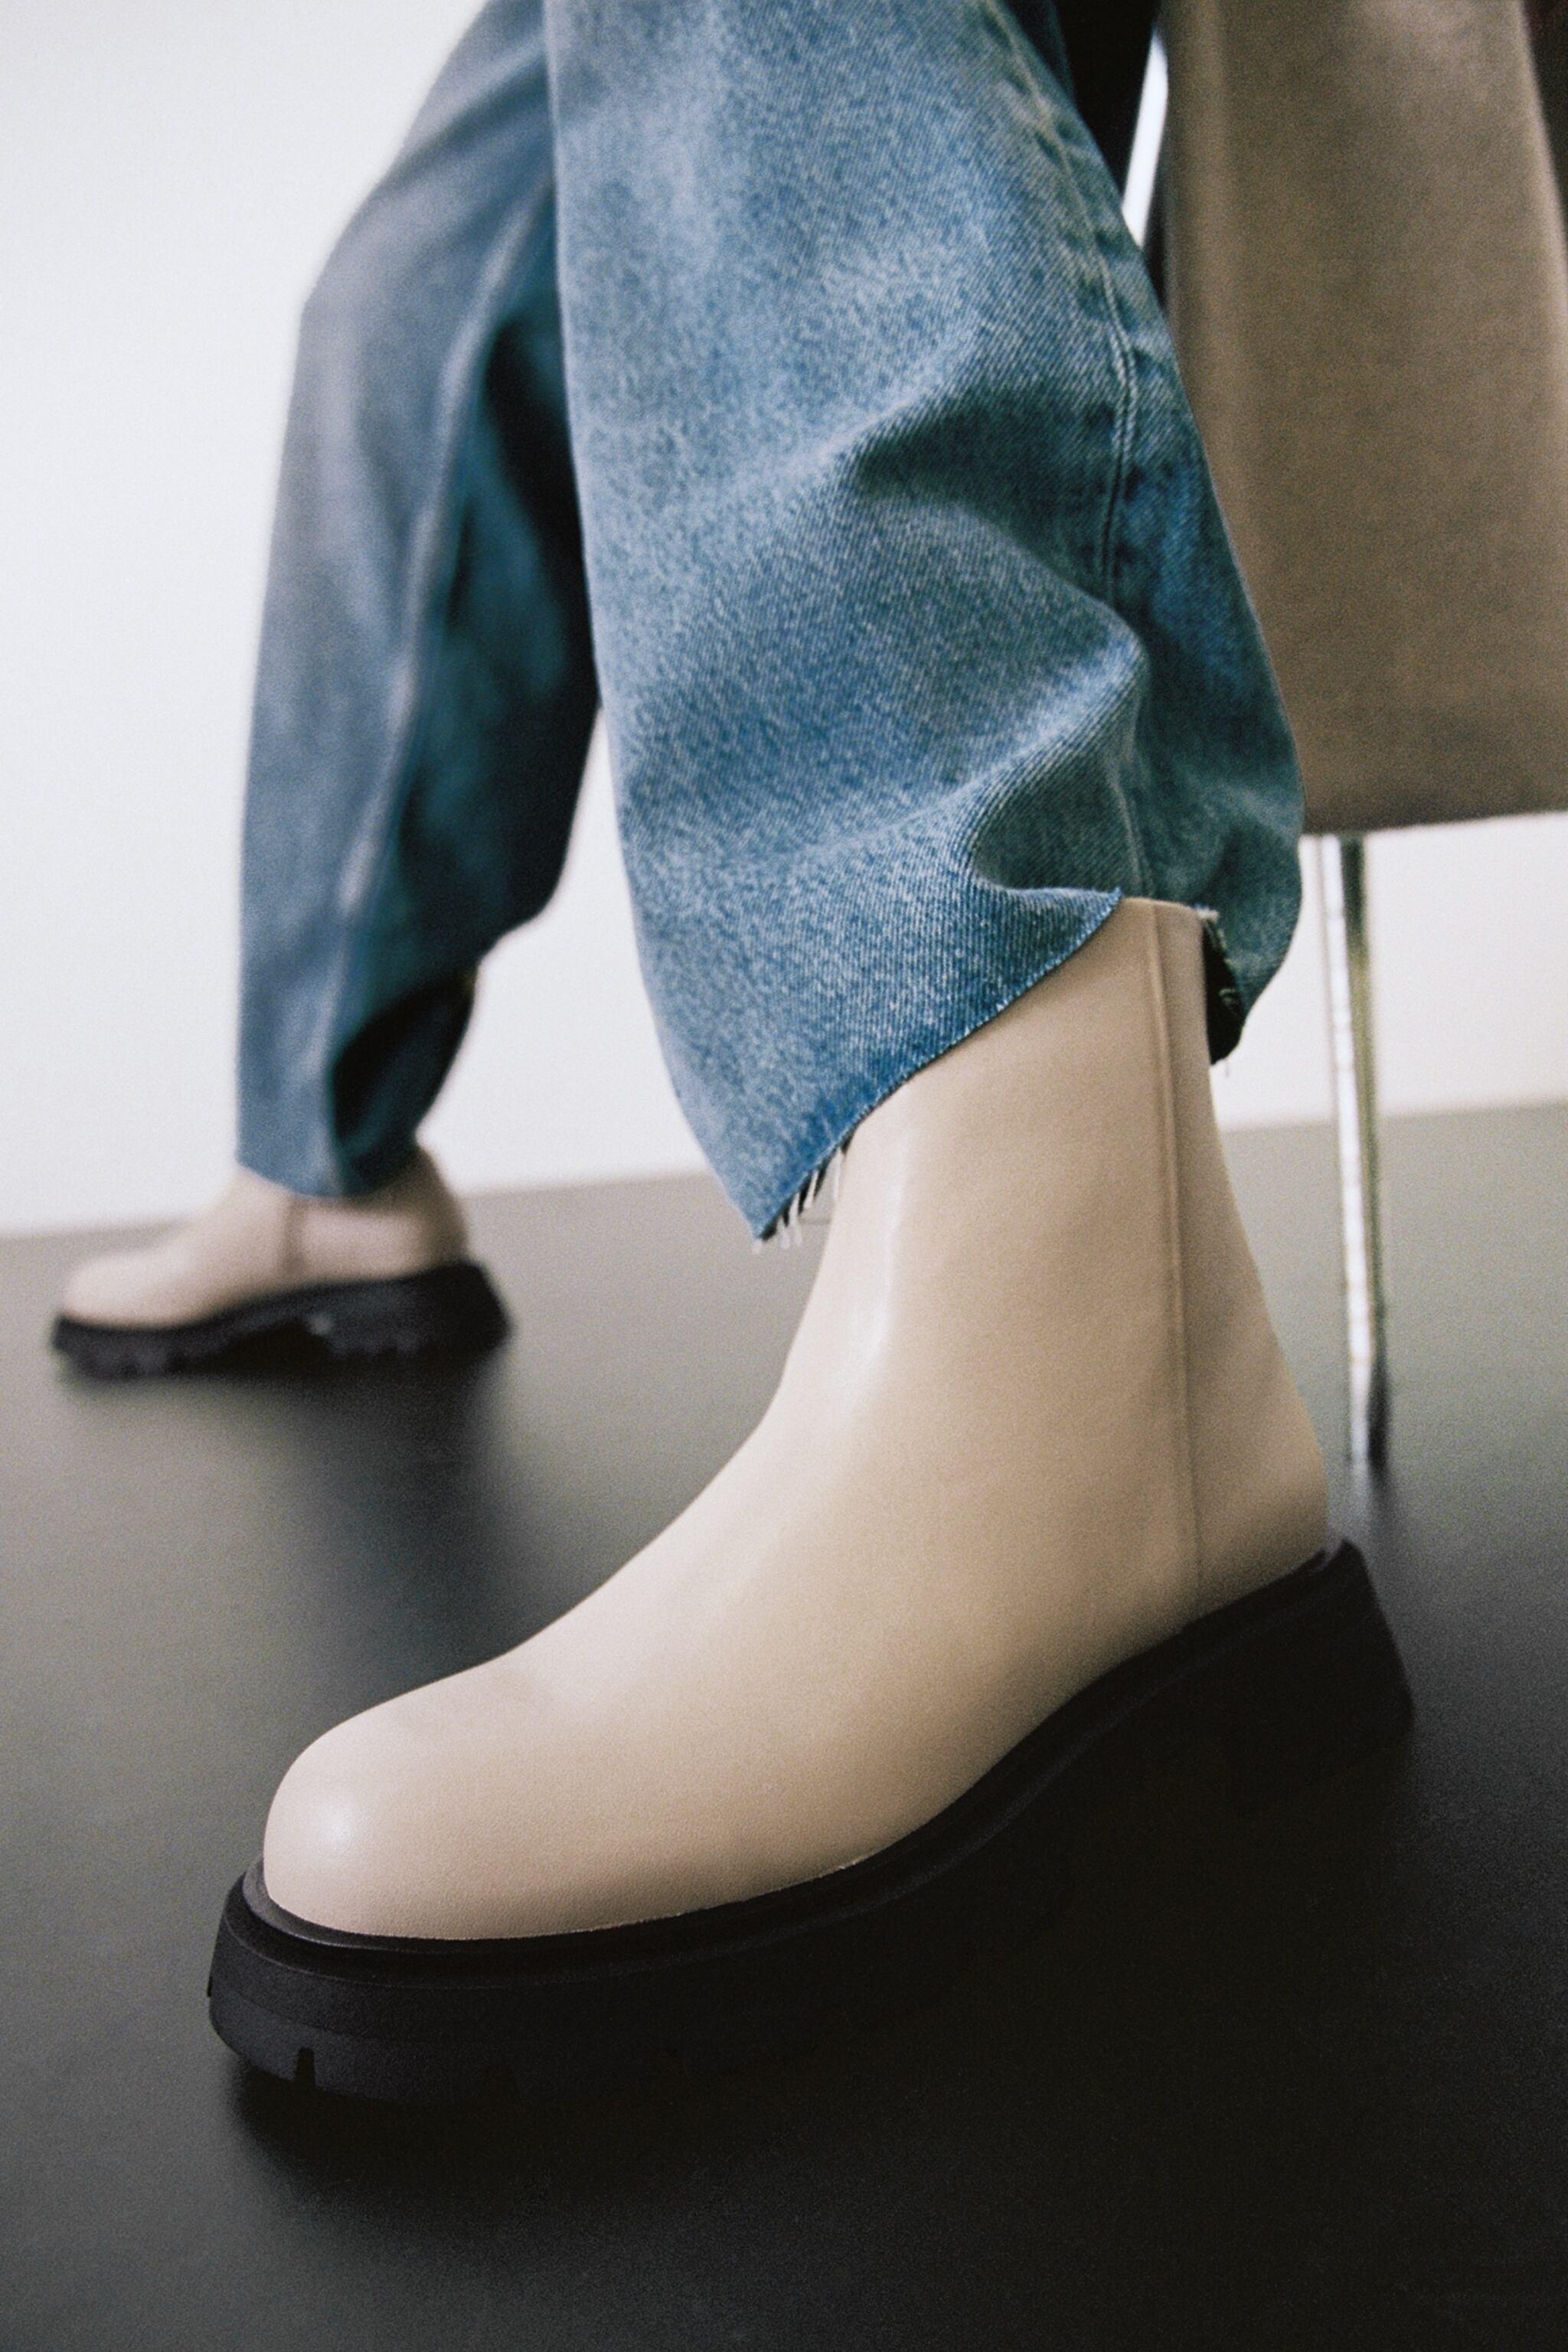 LOW HEELED LUG SOLE LEATHER ANKLE BOOTS